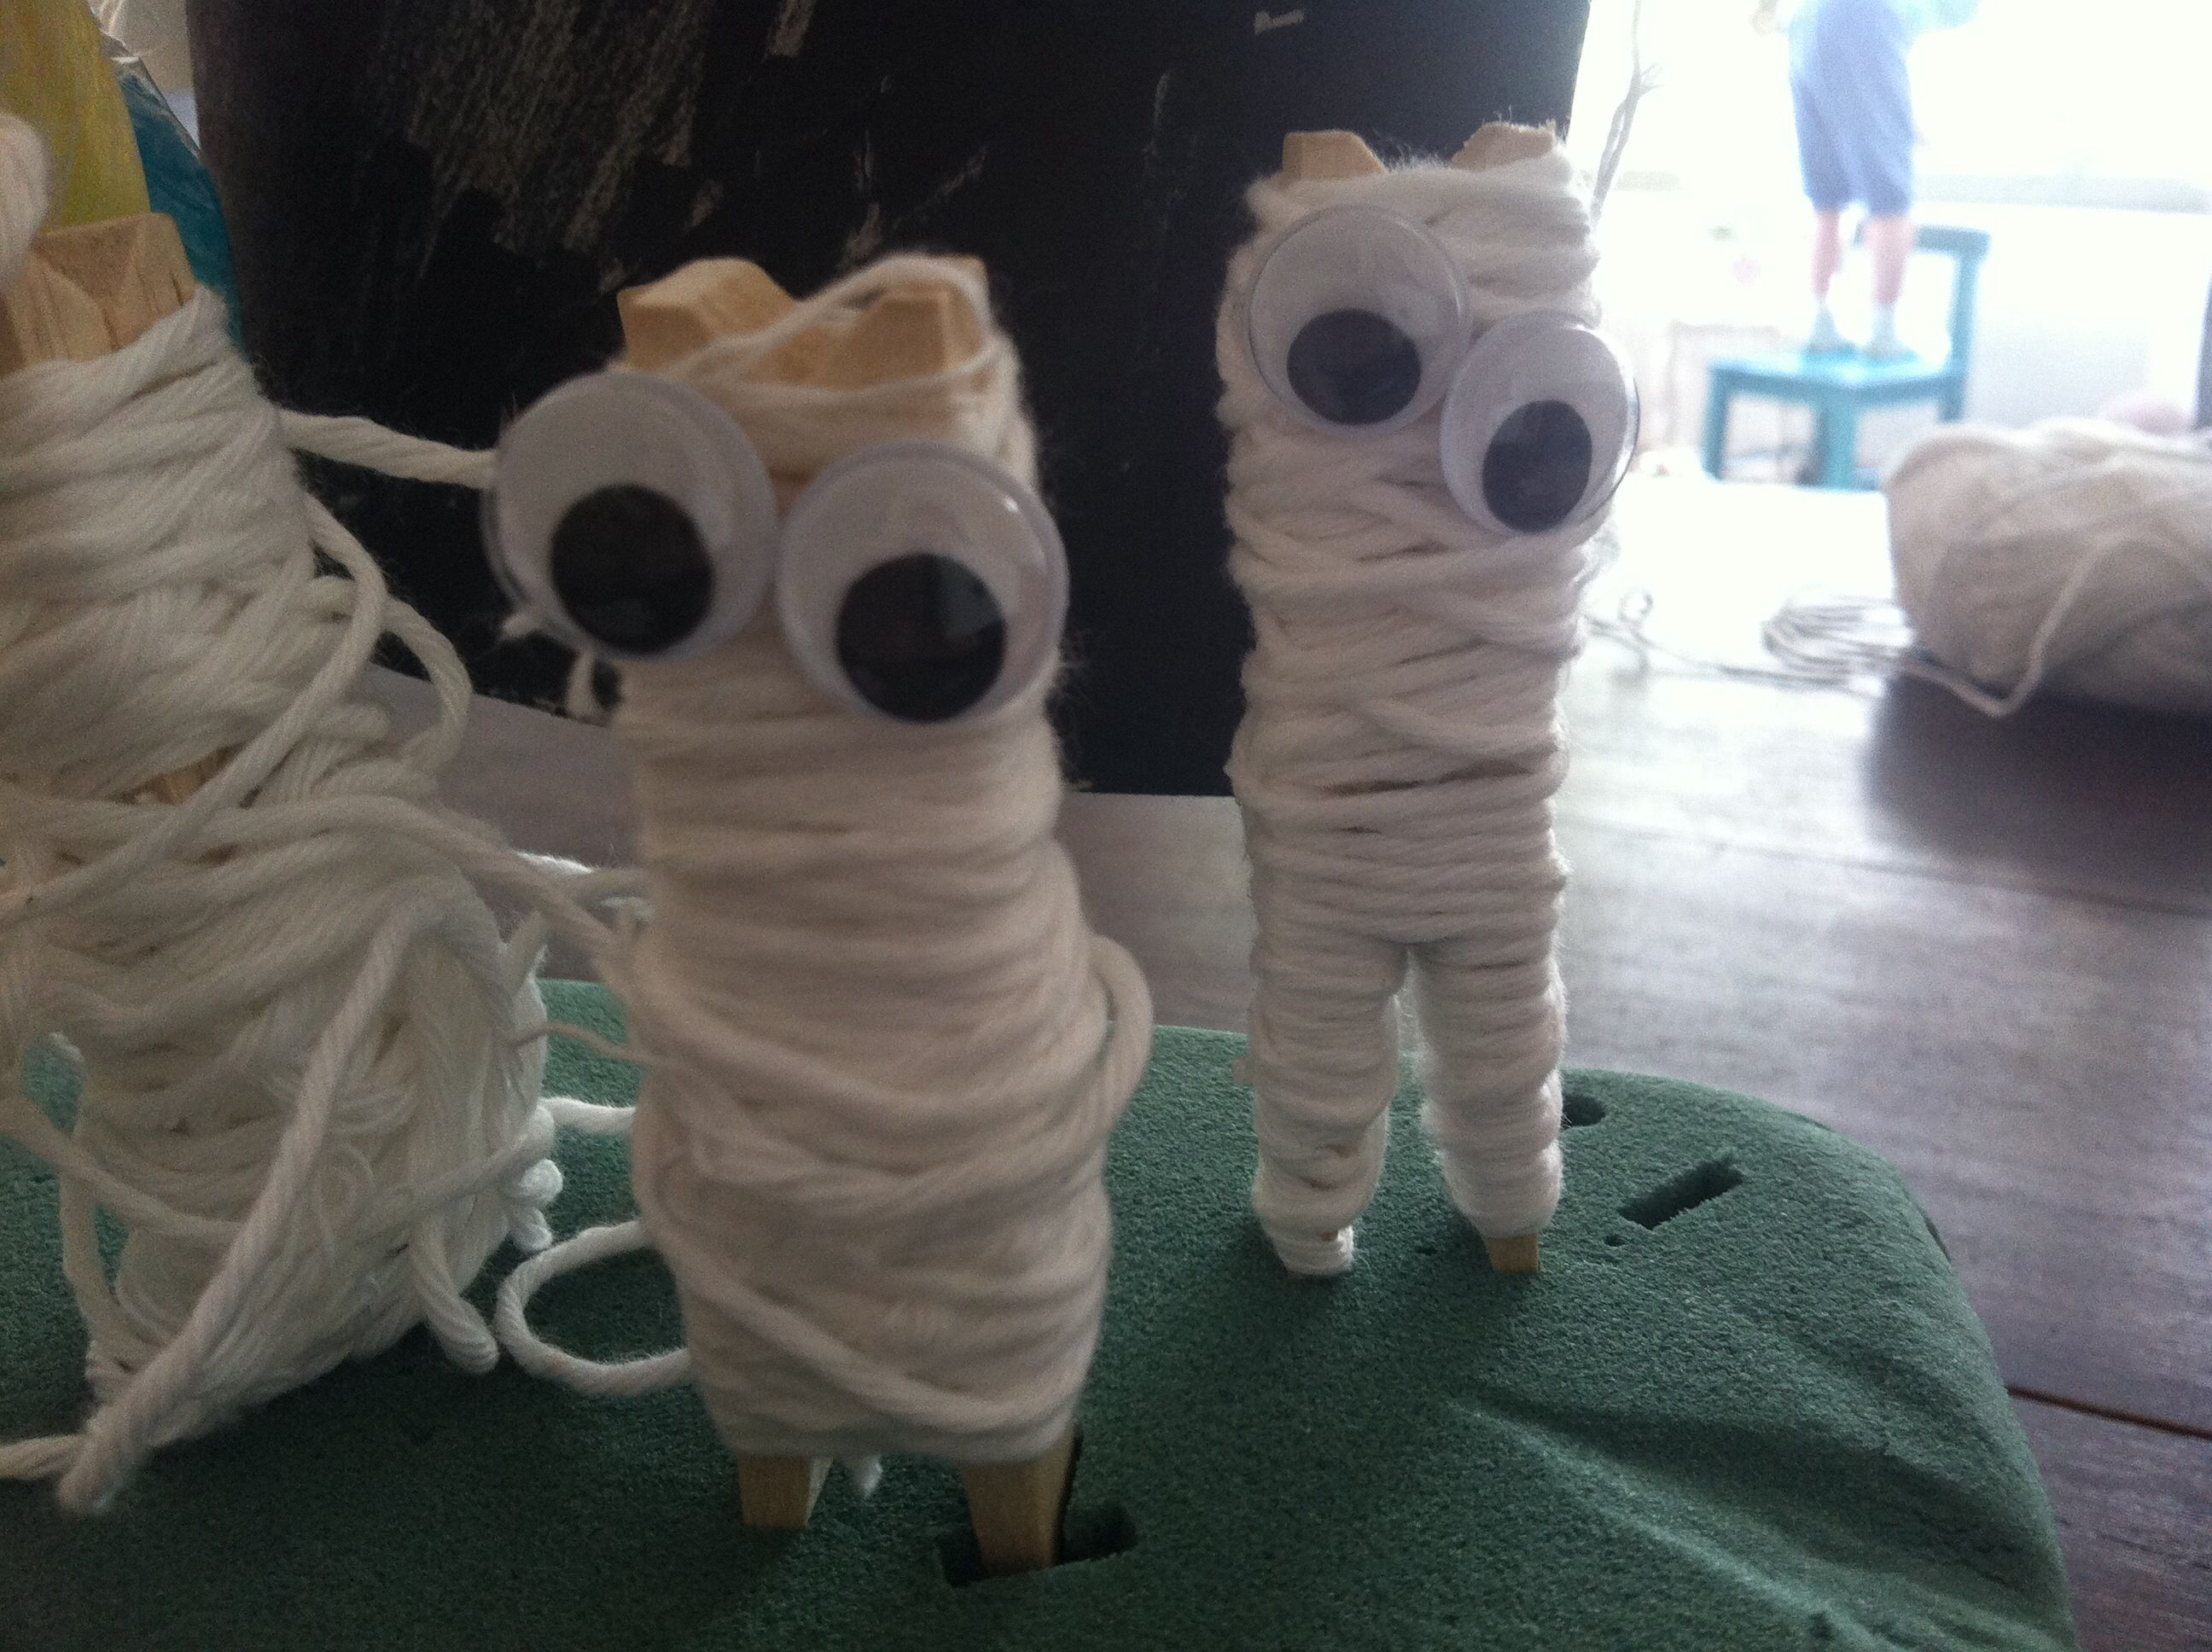 Zombies made from clothespins and yarn Easy Halloween craft - Do It Yourself Halloween Decorations